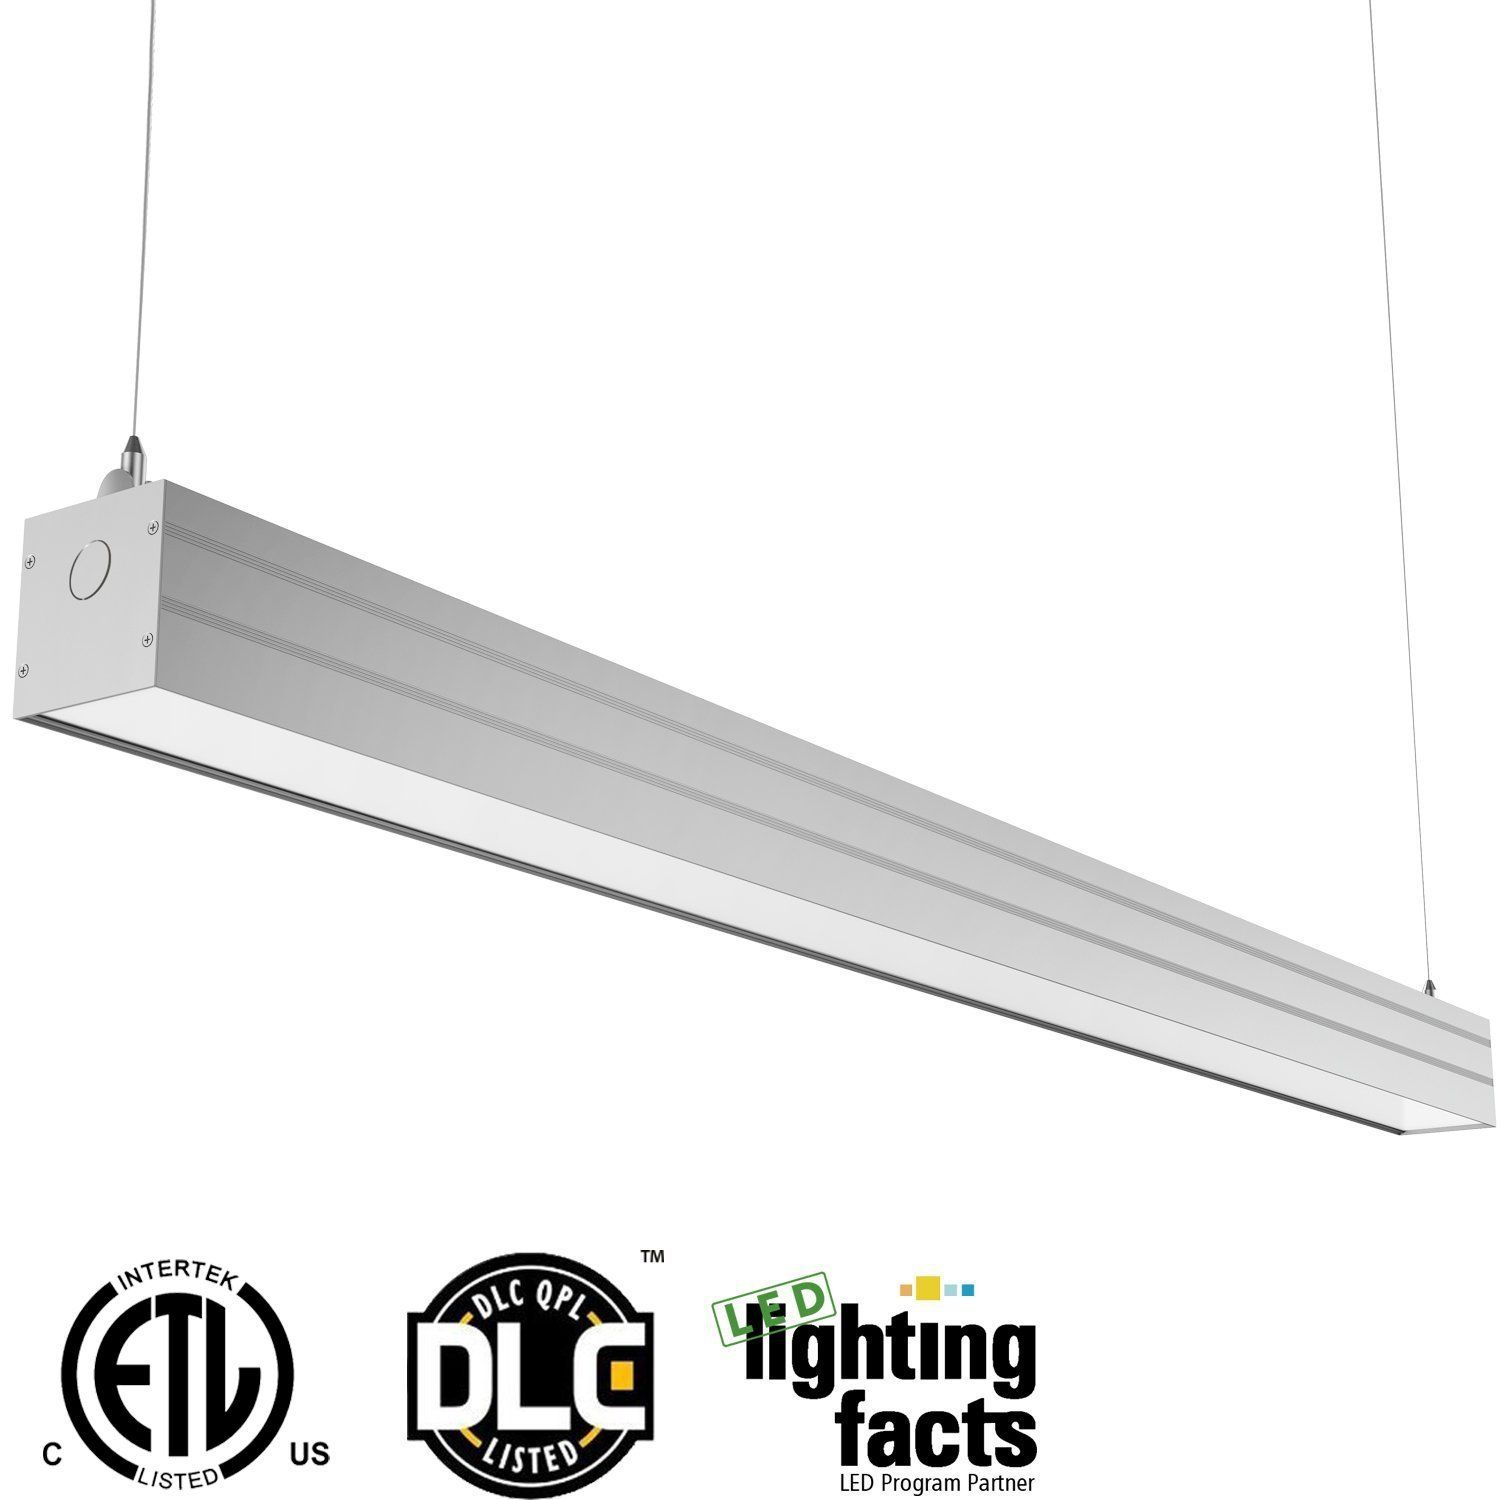 Hykolity 4ft 40w linkable led architectural ceiling light modern hykolity 4ft 40w linkable led architectural ceiling light modern linear suspension pendant lamp lighting fixture 4600 arubaitofo Gallery